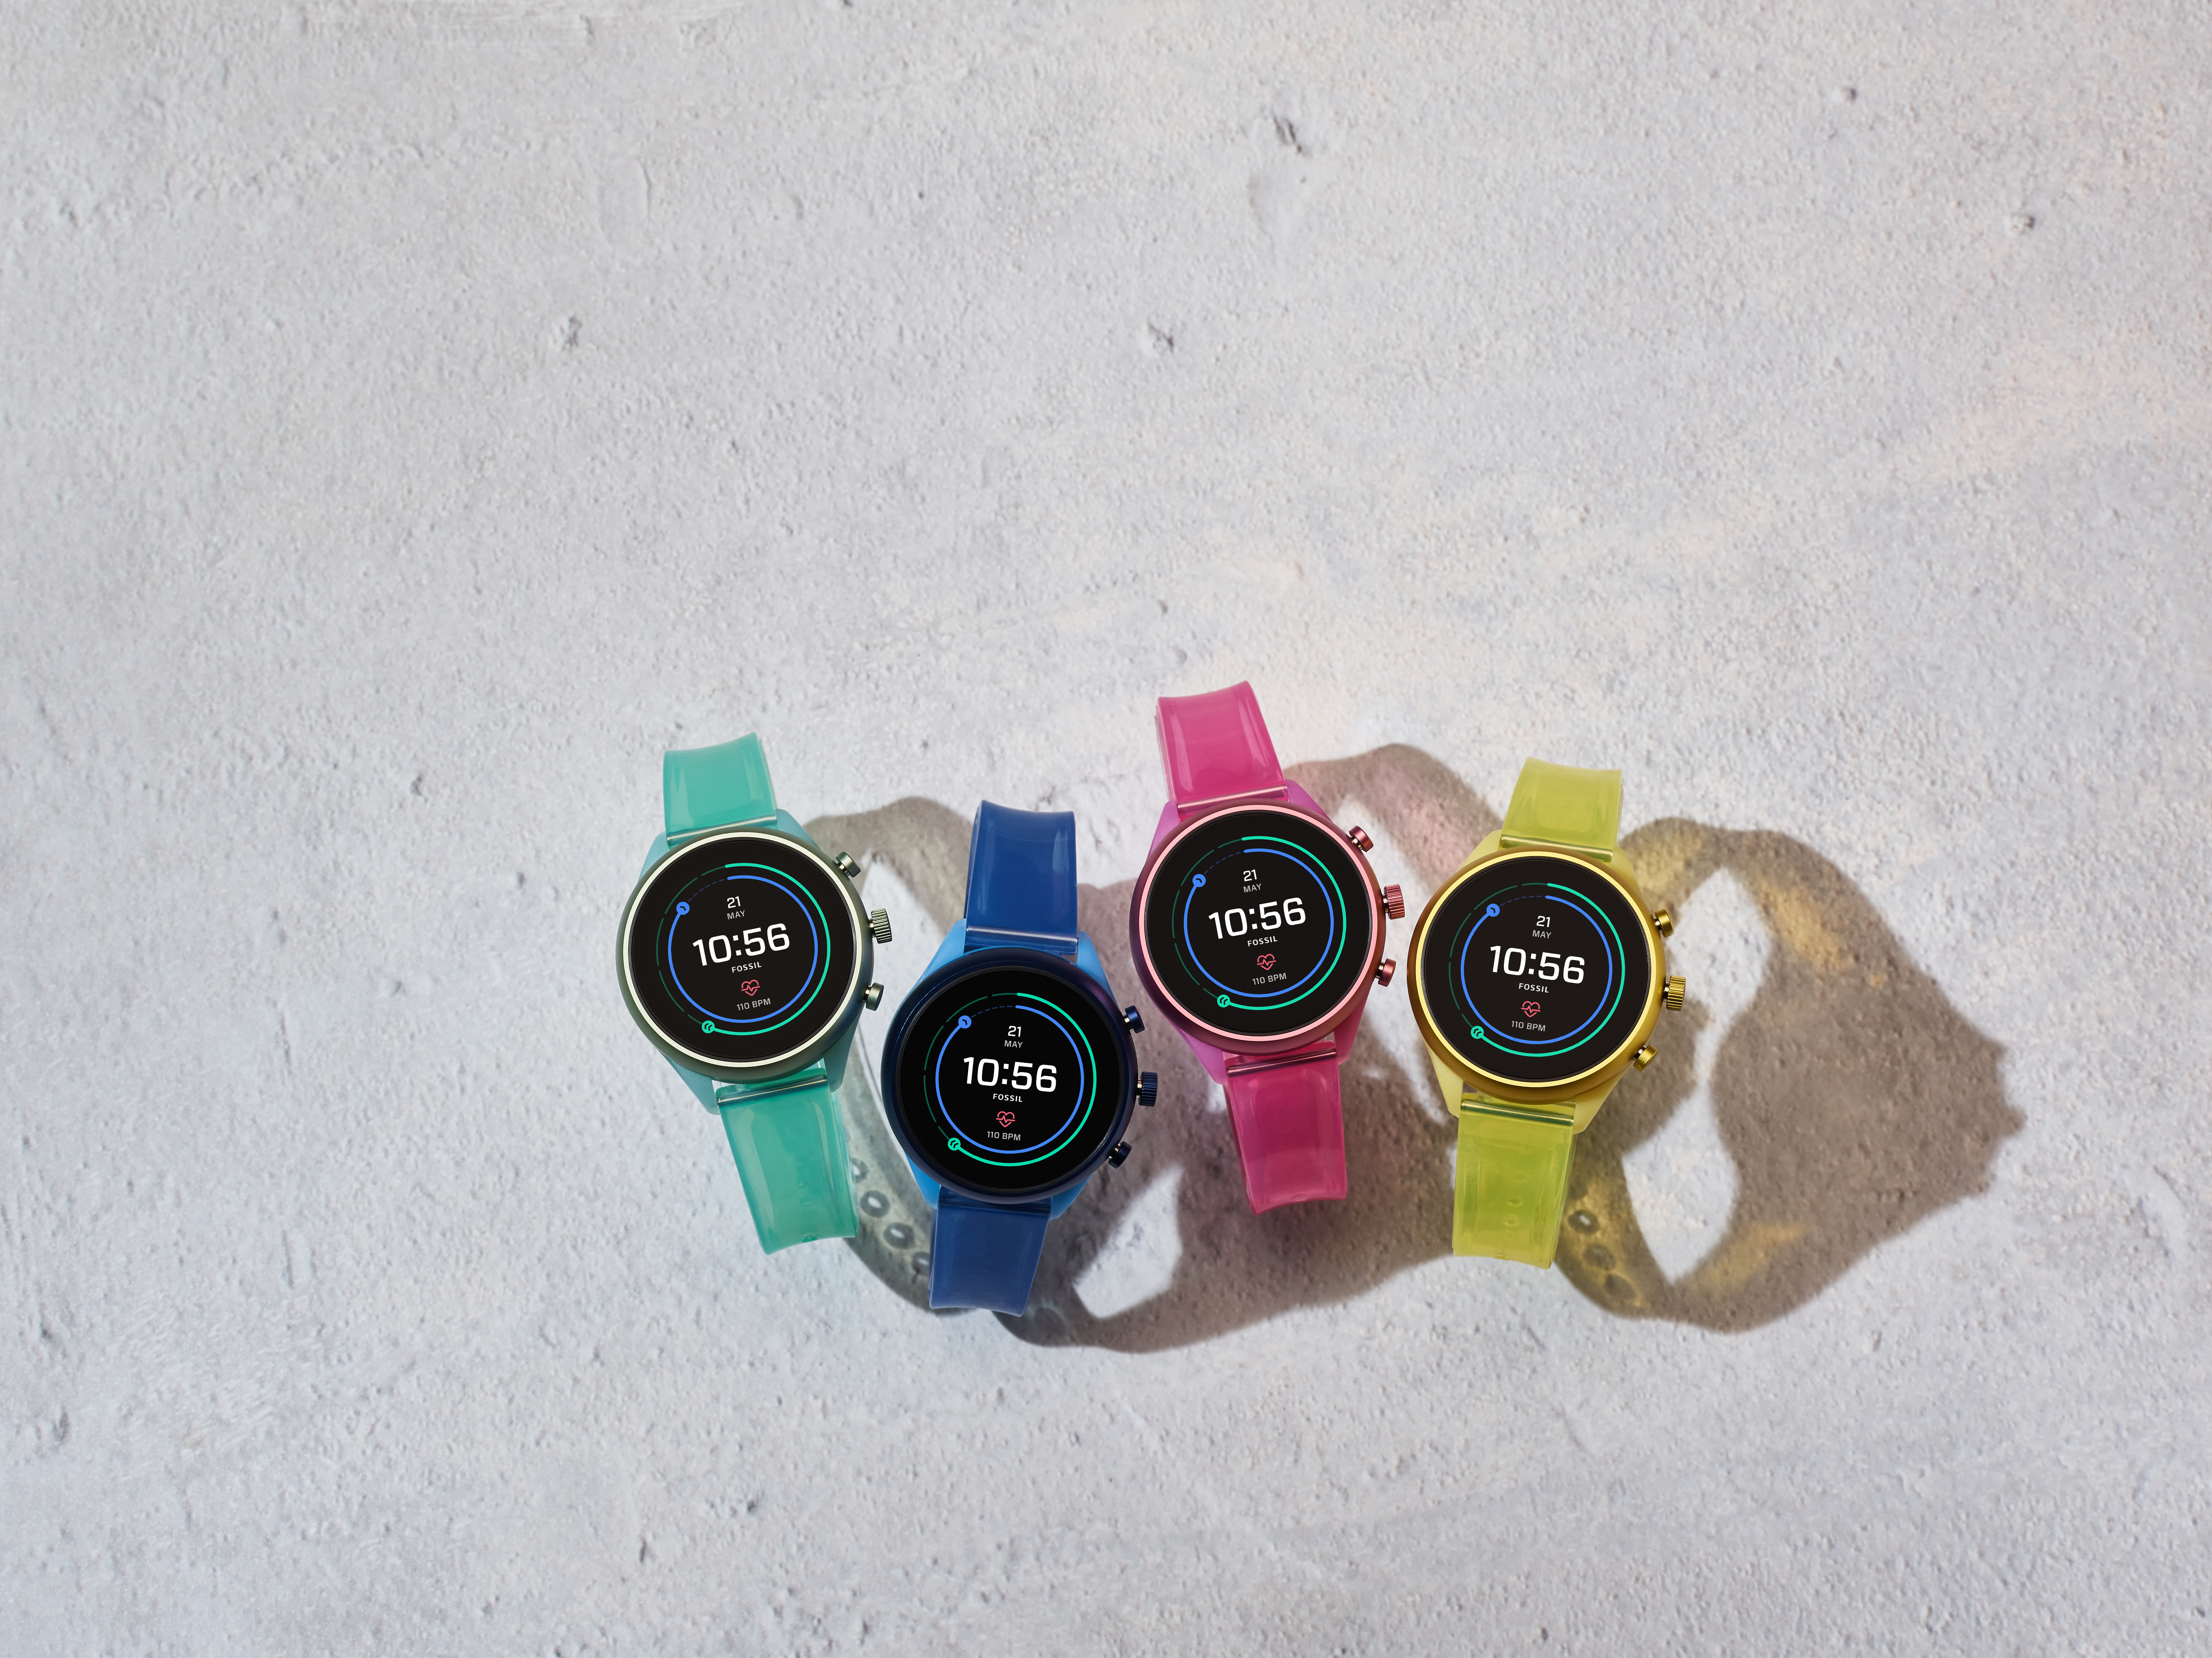 Fossil Sport at CES 2020